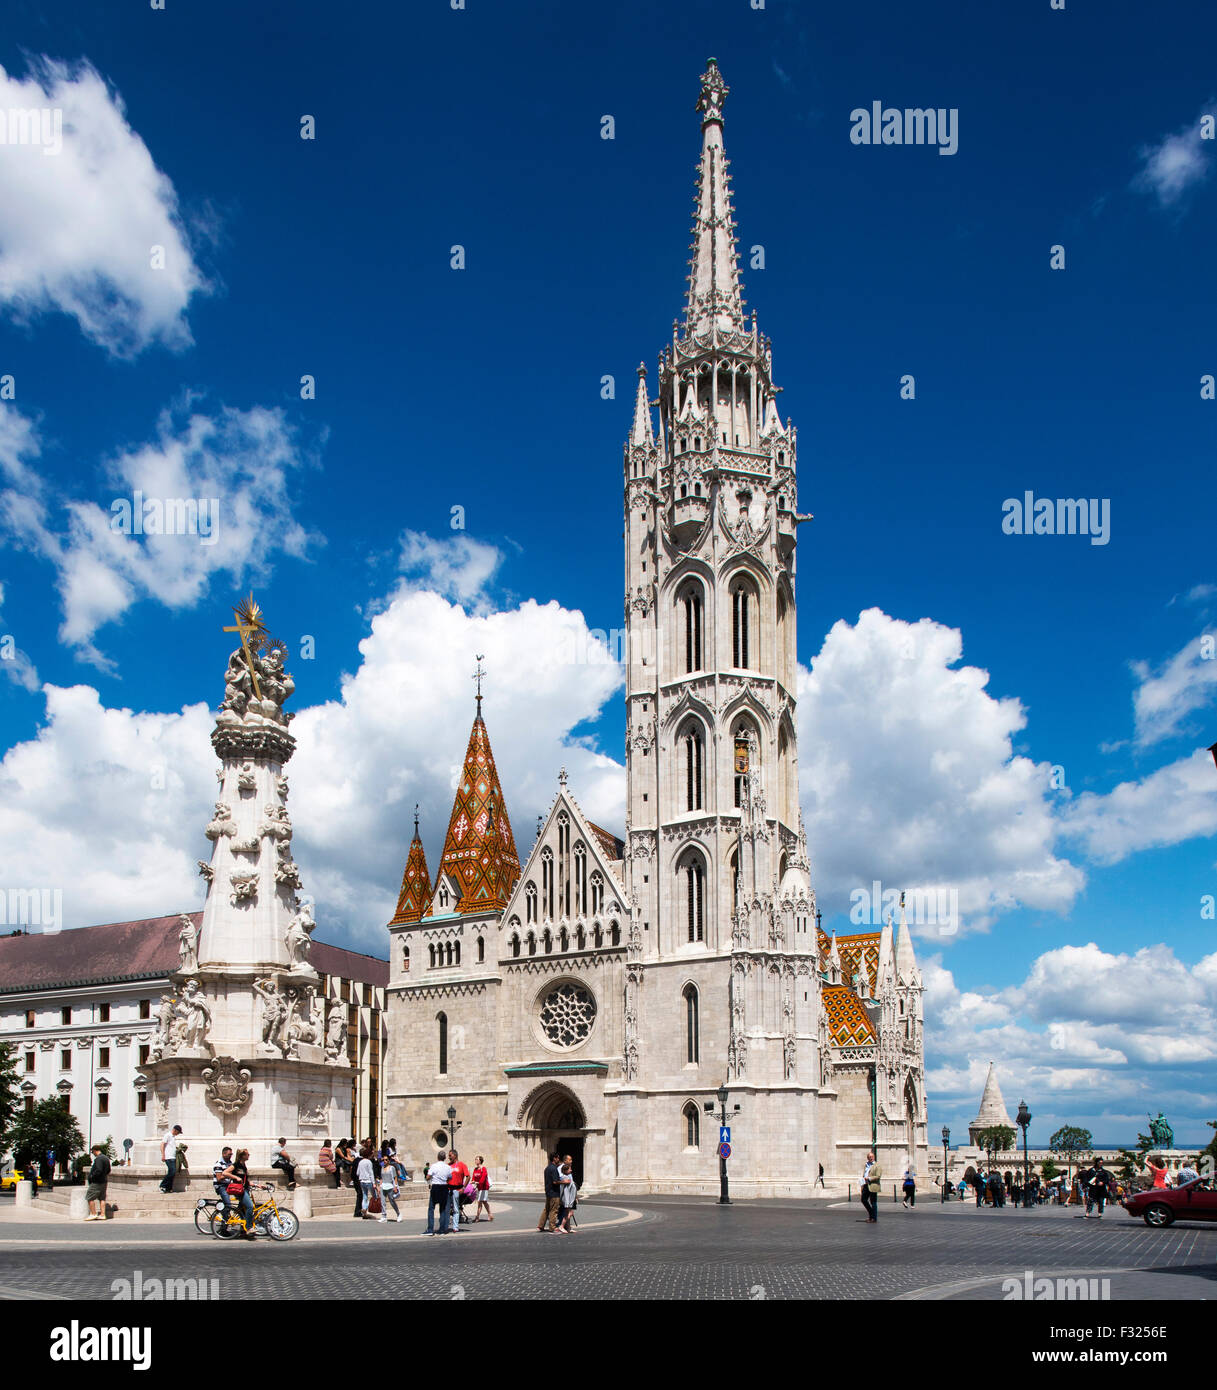 Matyas Church, Castle District, Budapest, Hungary - Stock Image